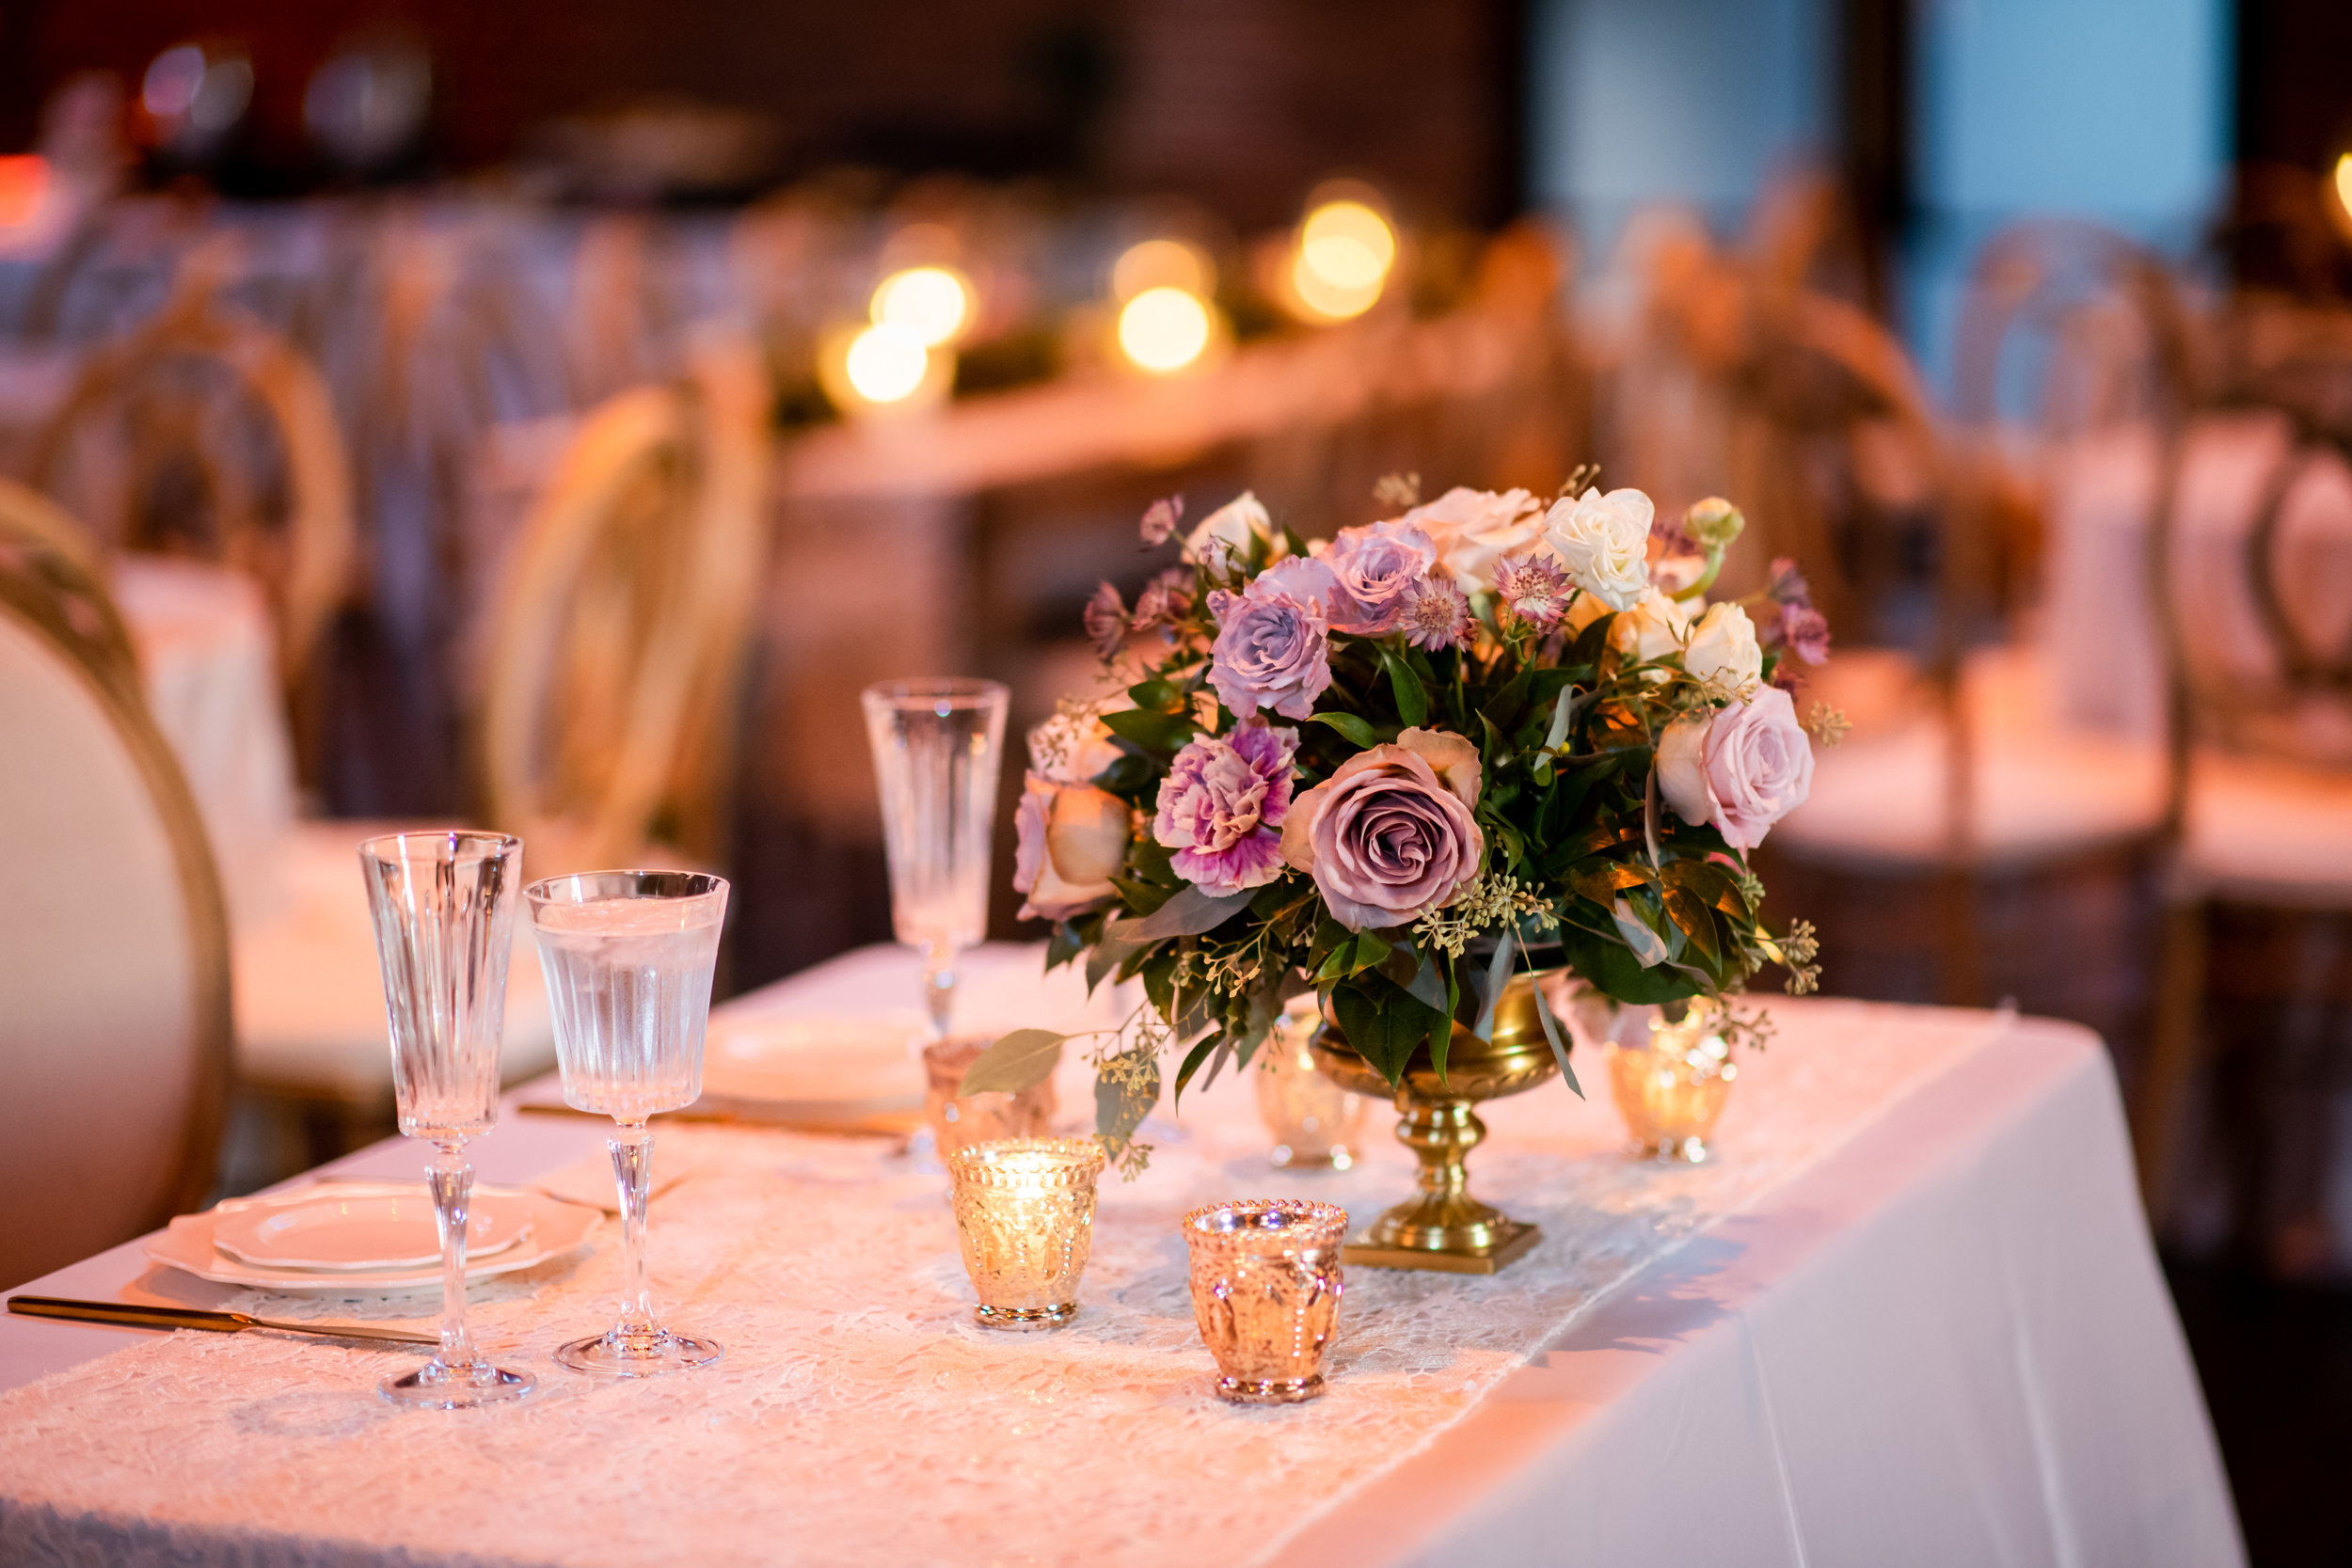 Katie_Dustin_Clementine_Hall_Wedding_Kathy_Thomas_Photography-3712.jpg